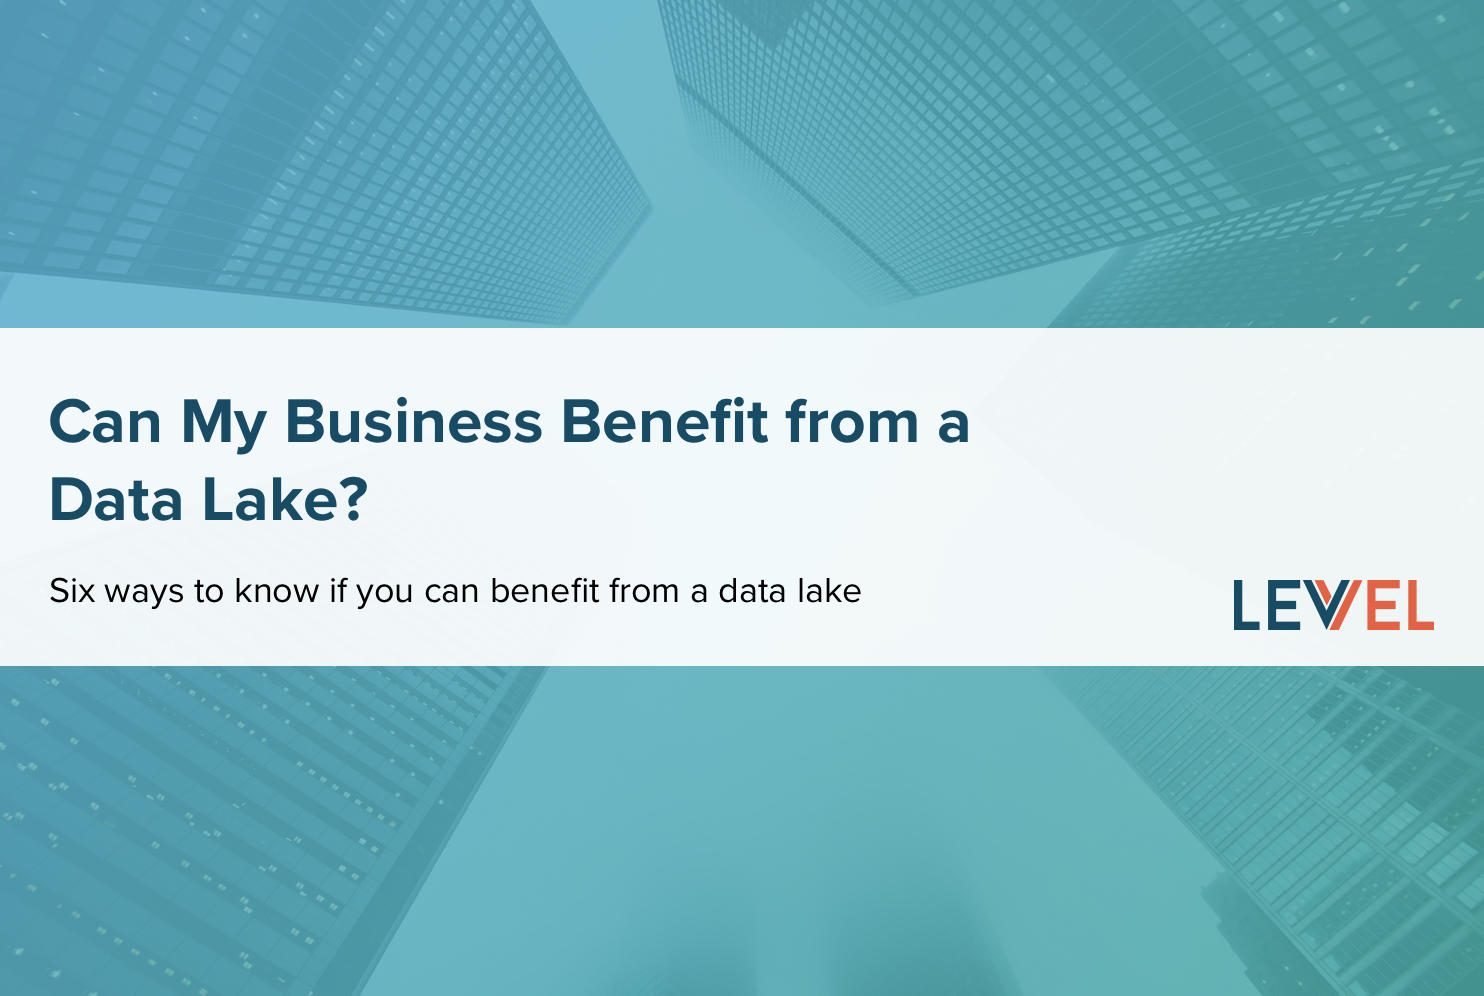 Can My Business Benefit from a Data Lake?